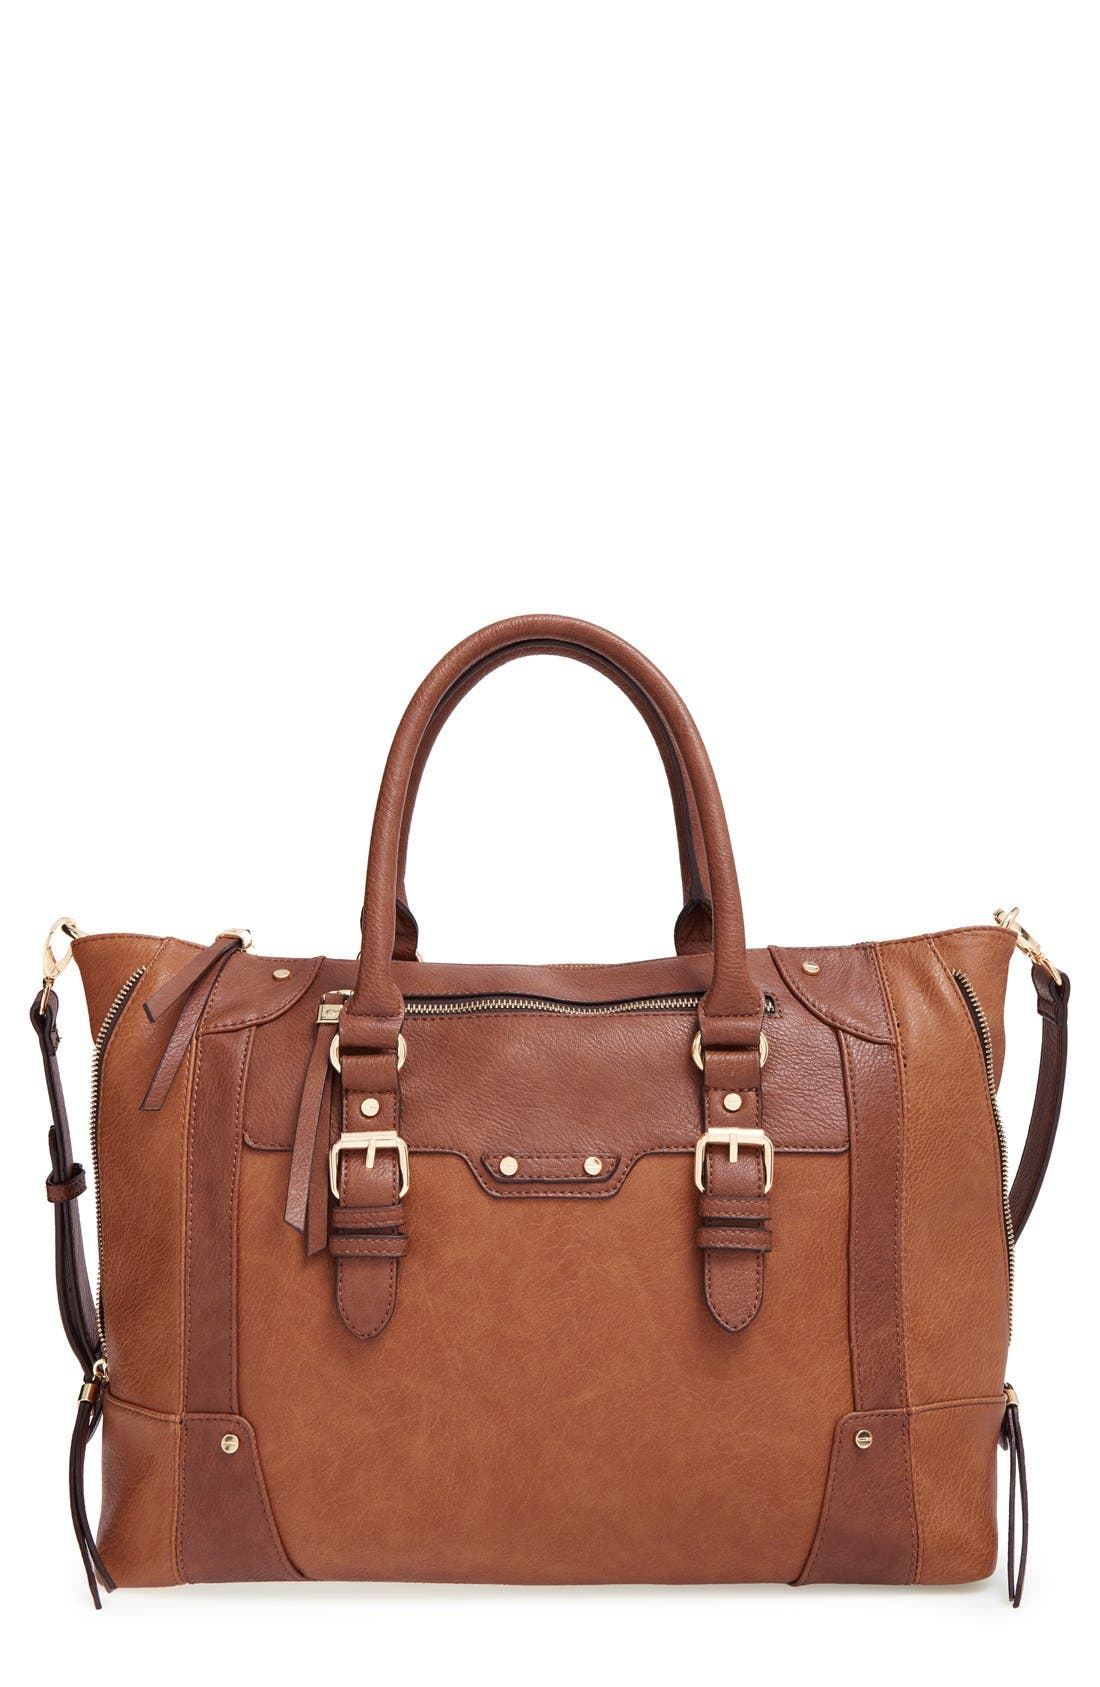 SOLE SOCIETY, 'Susan' Winged Faux Leather Tote, Main thumbnail 1, color, BROWN